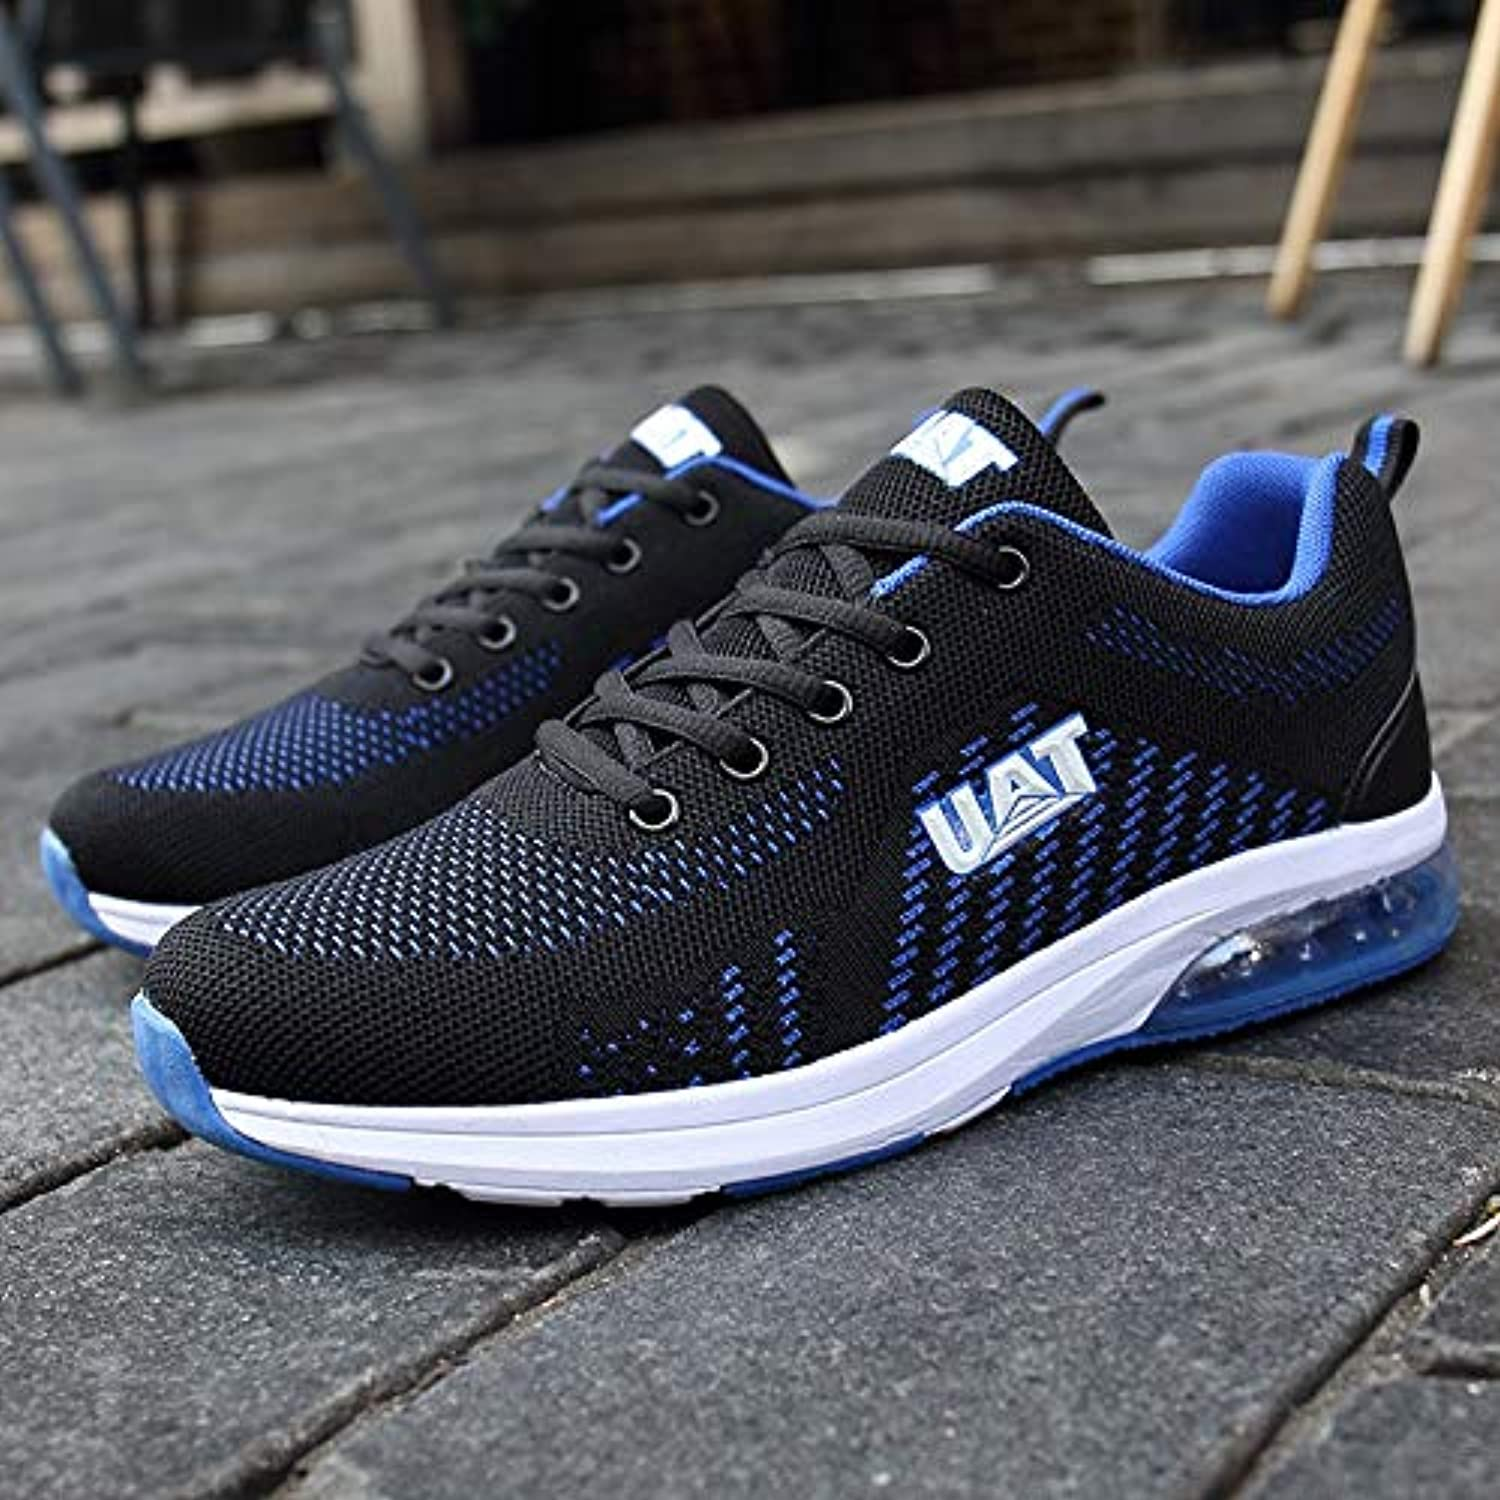 HAWEEL Casual Sports shoes Casual Outdoor Flying Woven Cushion shoes for Men (color Black Grey Size 39)